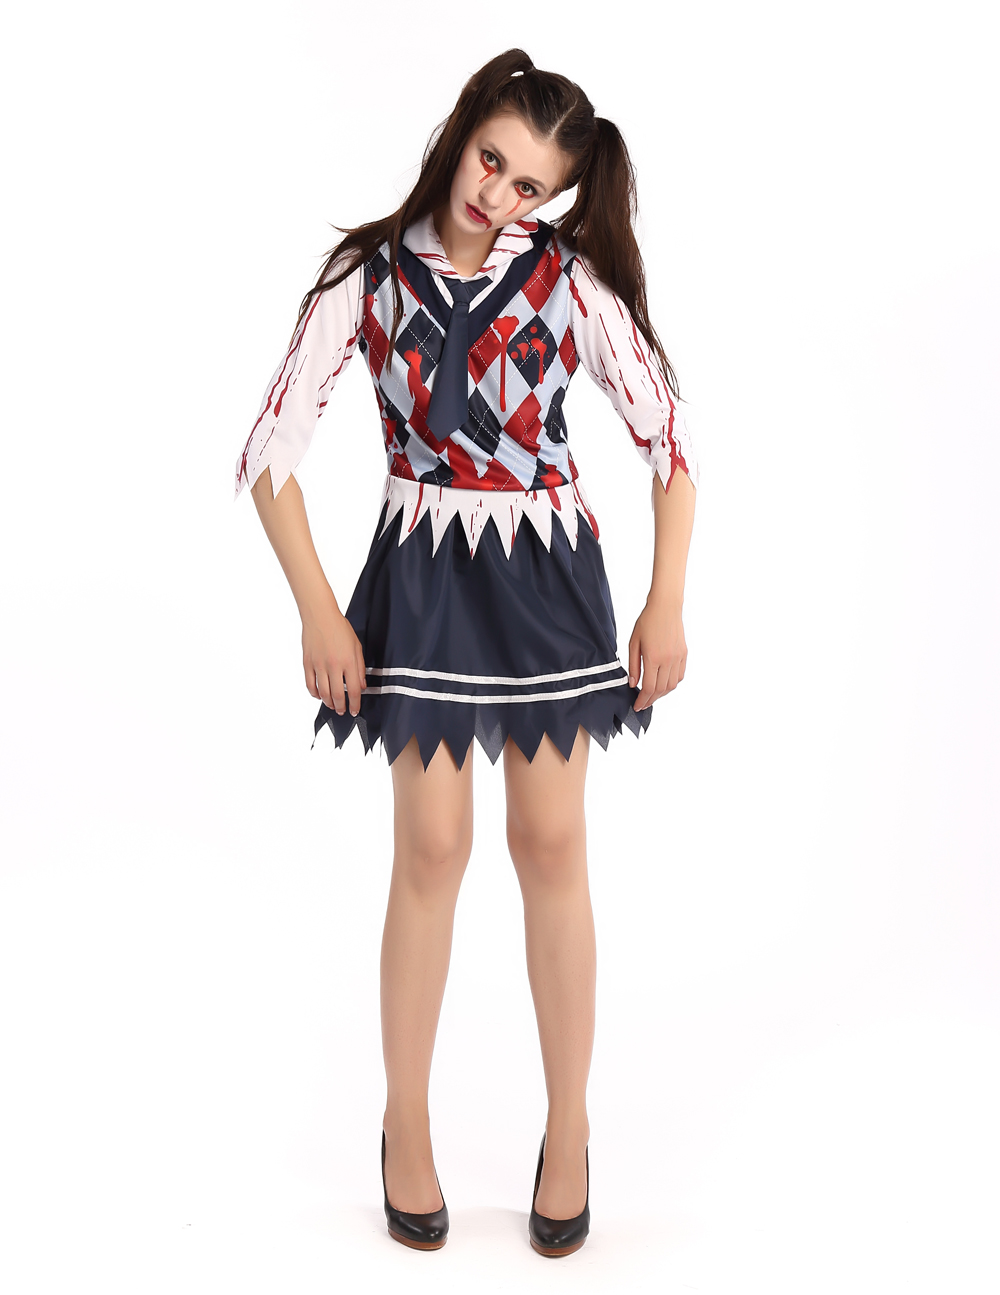 F1676 Halloween sexy school costume for girl